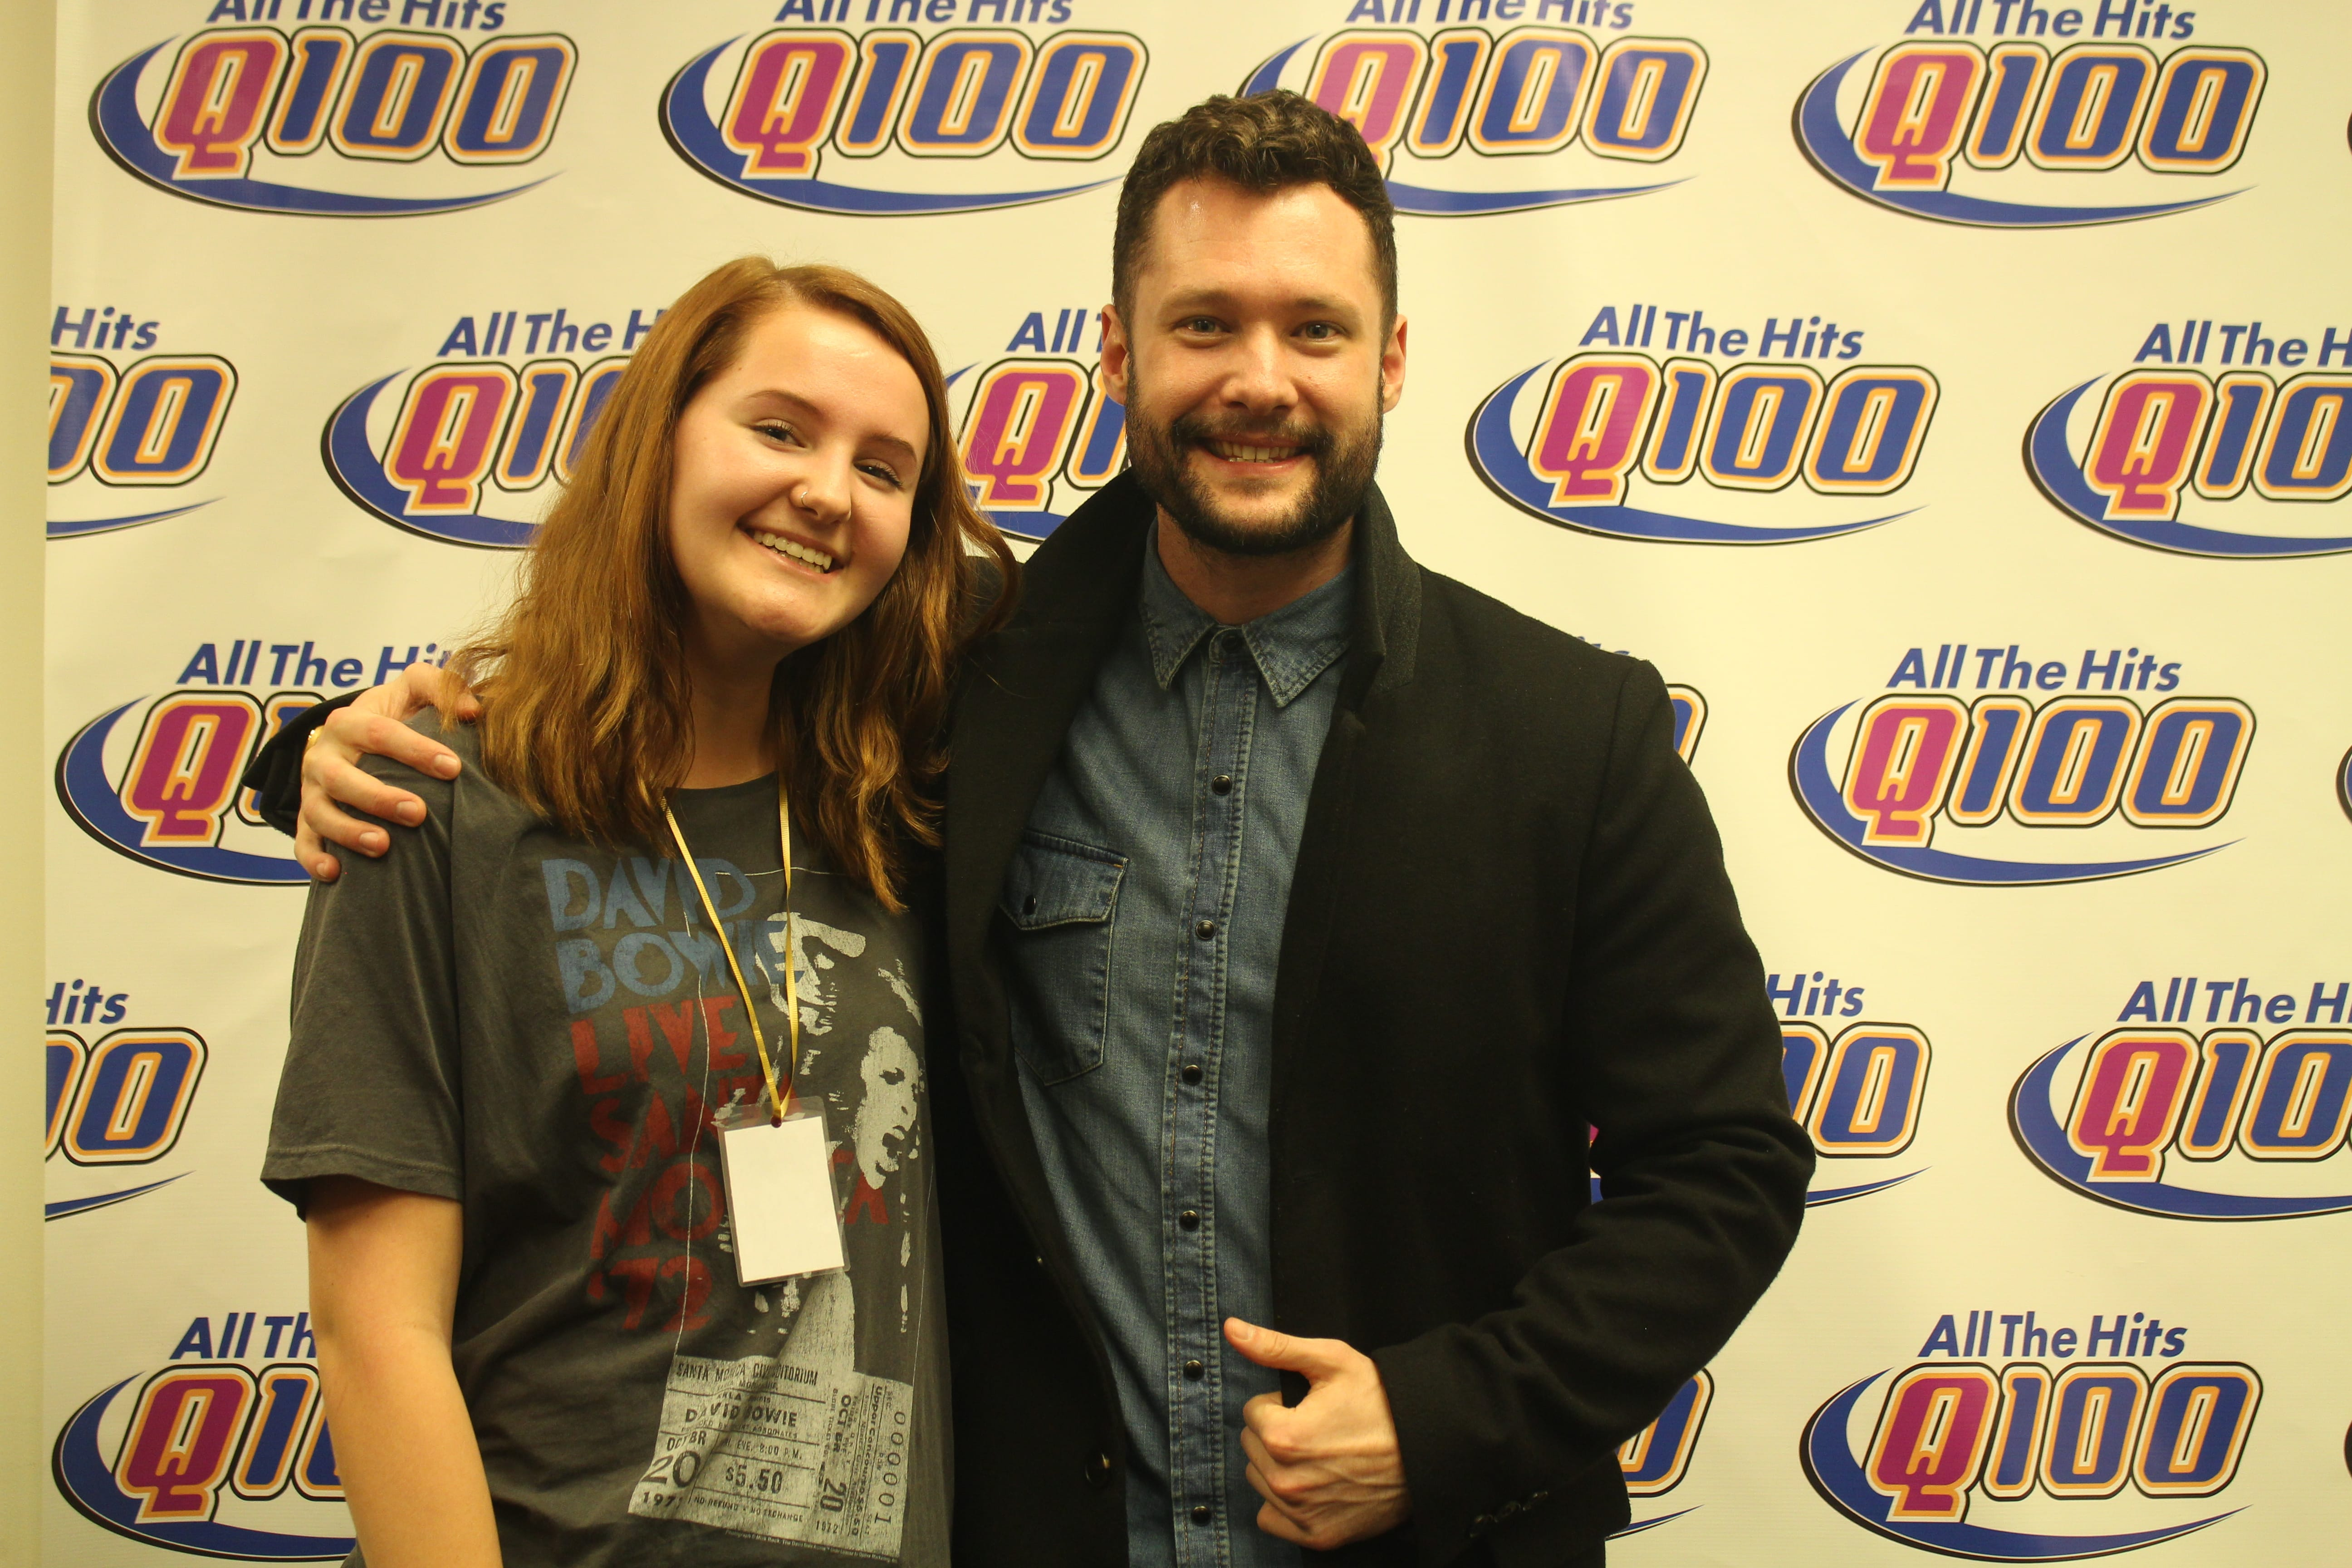 Calum scott meet greet pics q100 wwwq fm we have your meet greet photo with calum himself below download it and put it up on social media and go crazy tag us tag yourself and of course tag kristyandbryce Image collections